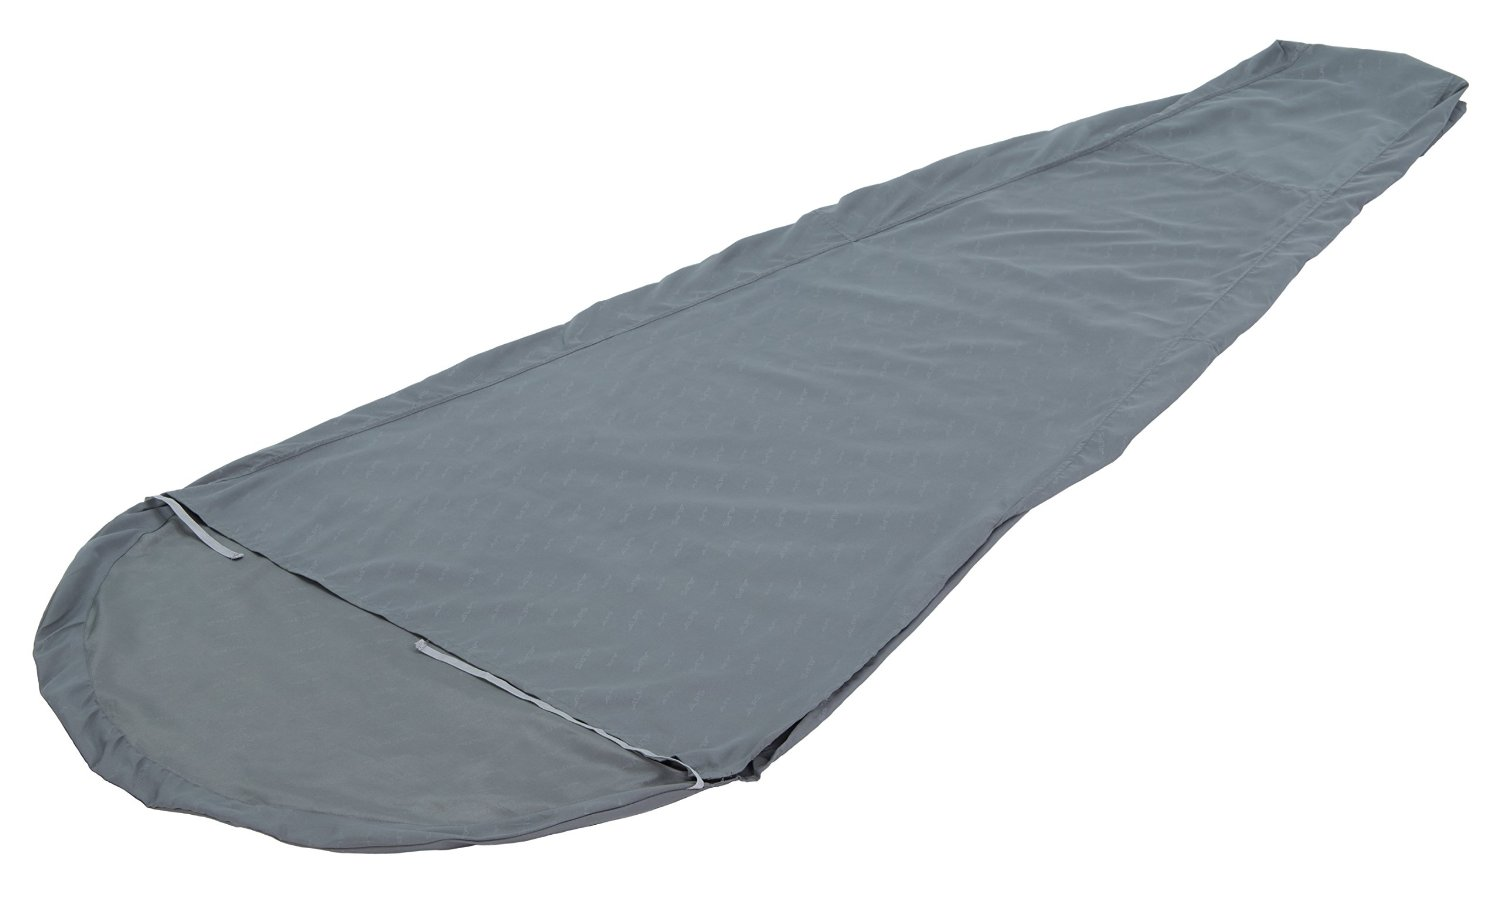 Sleeping Bag Liner Mummy Style By Highlander 100/% Polycotton With Stuff Sack